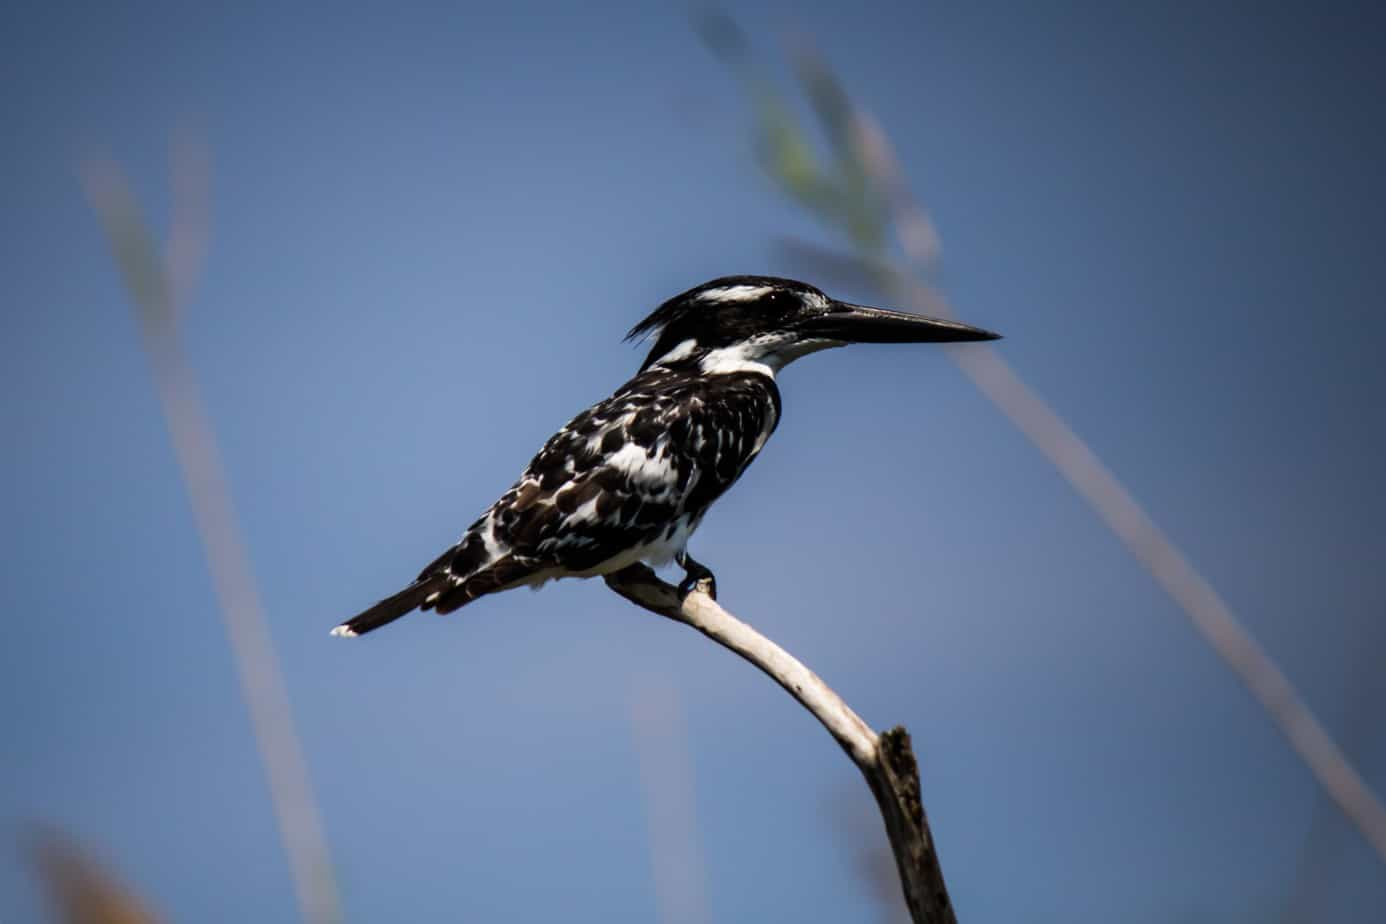 Pied Kingfisher @ Kosi Bay, South Africa. Photo: Håvard Rosenlund